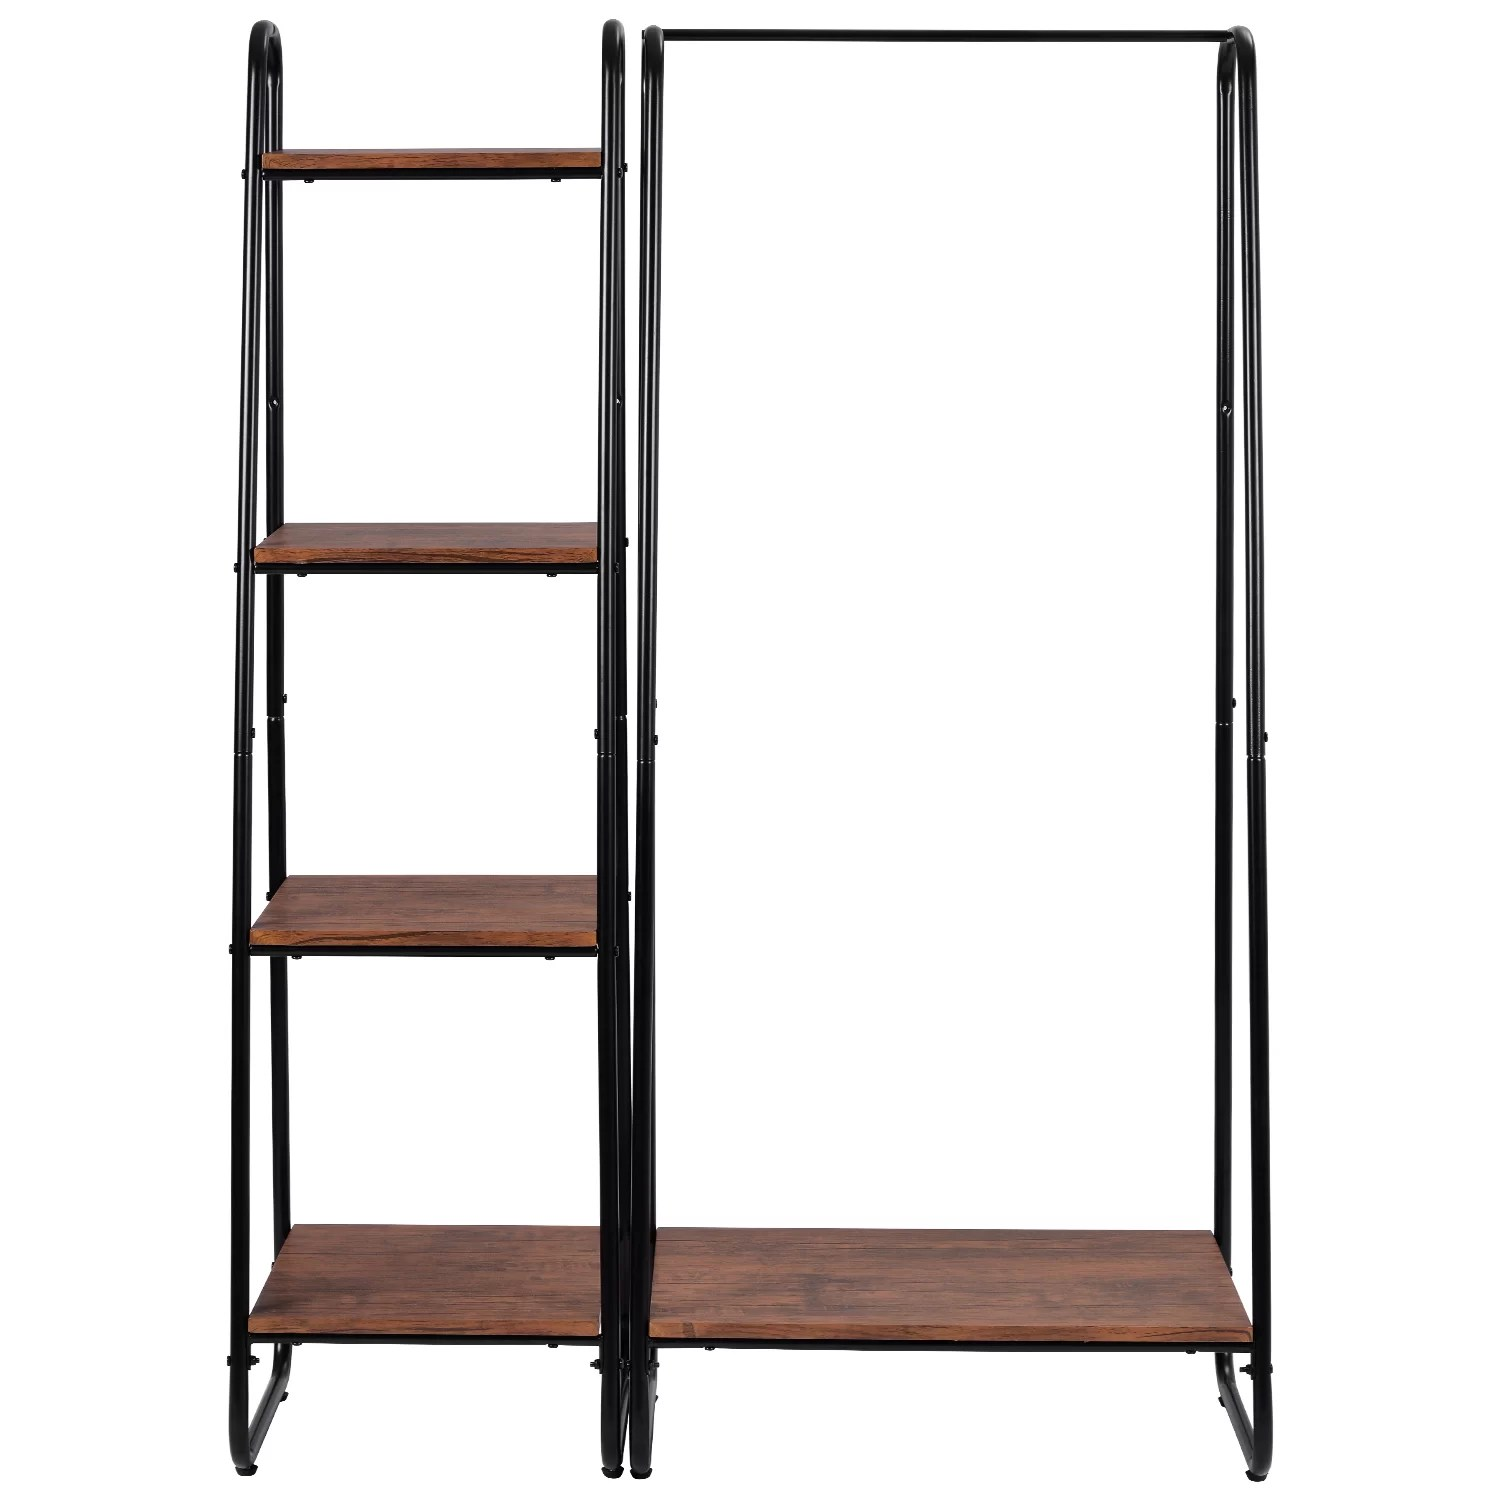 guenther heavy duty clothes rail metal coat stands with shoe rack storage cabinet wardrobe 4 tiers ladder bookshelf shelving unit vintage wood